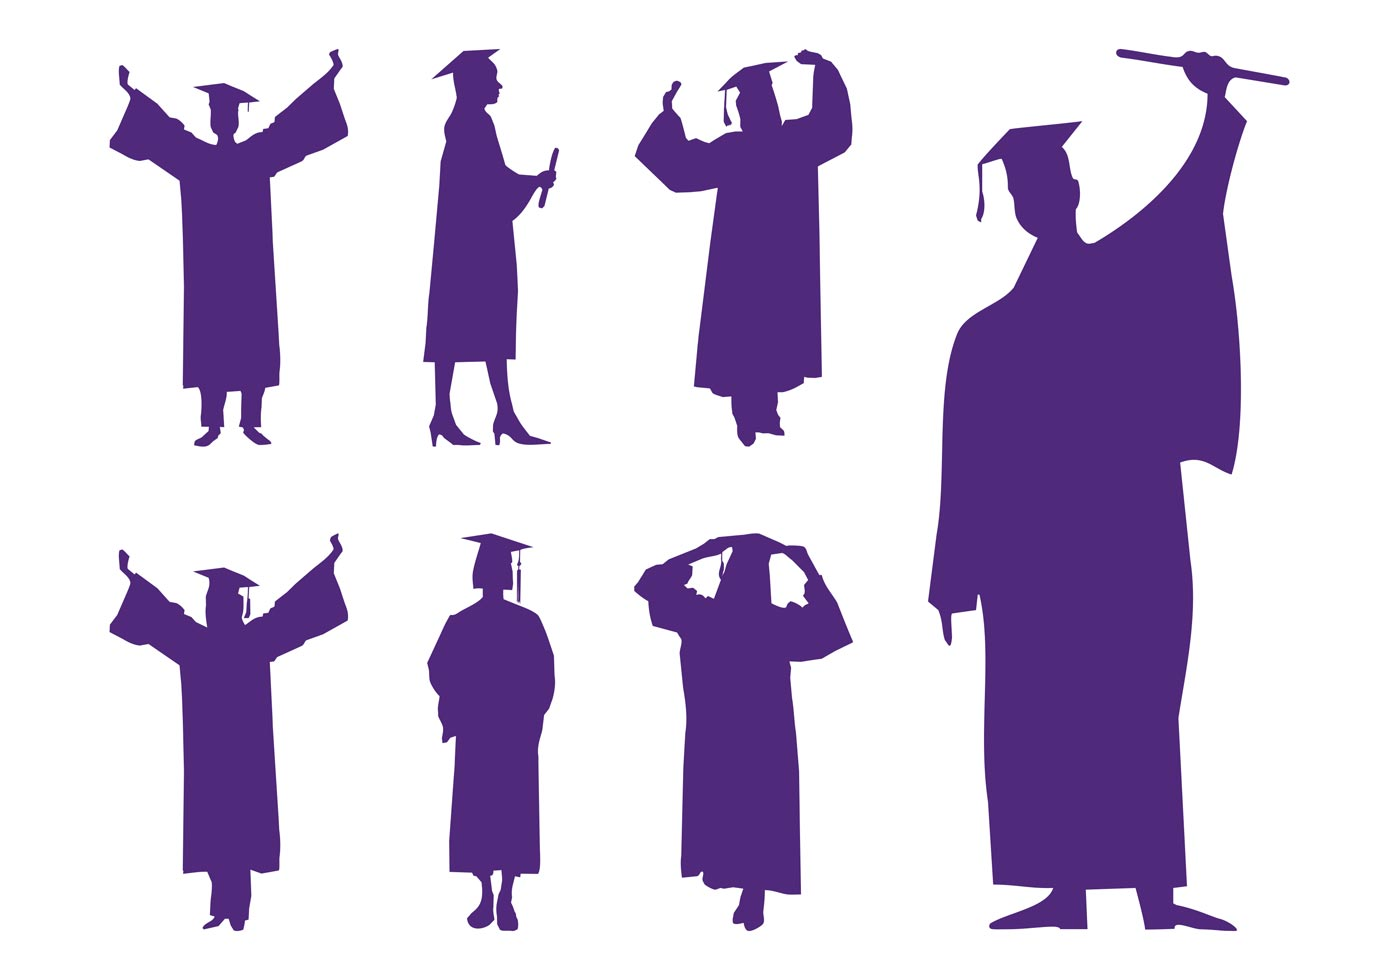 Graduation Silhouettes - Download Free Vector Art, Stock ...